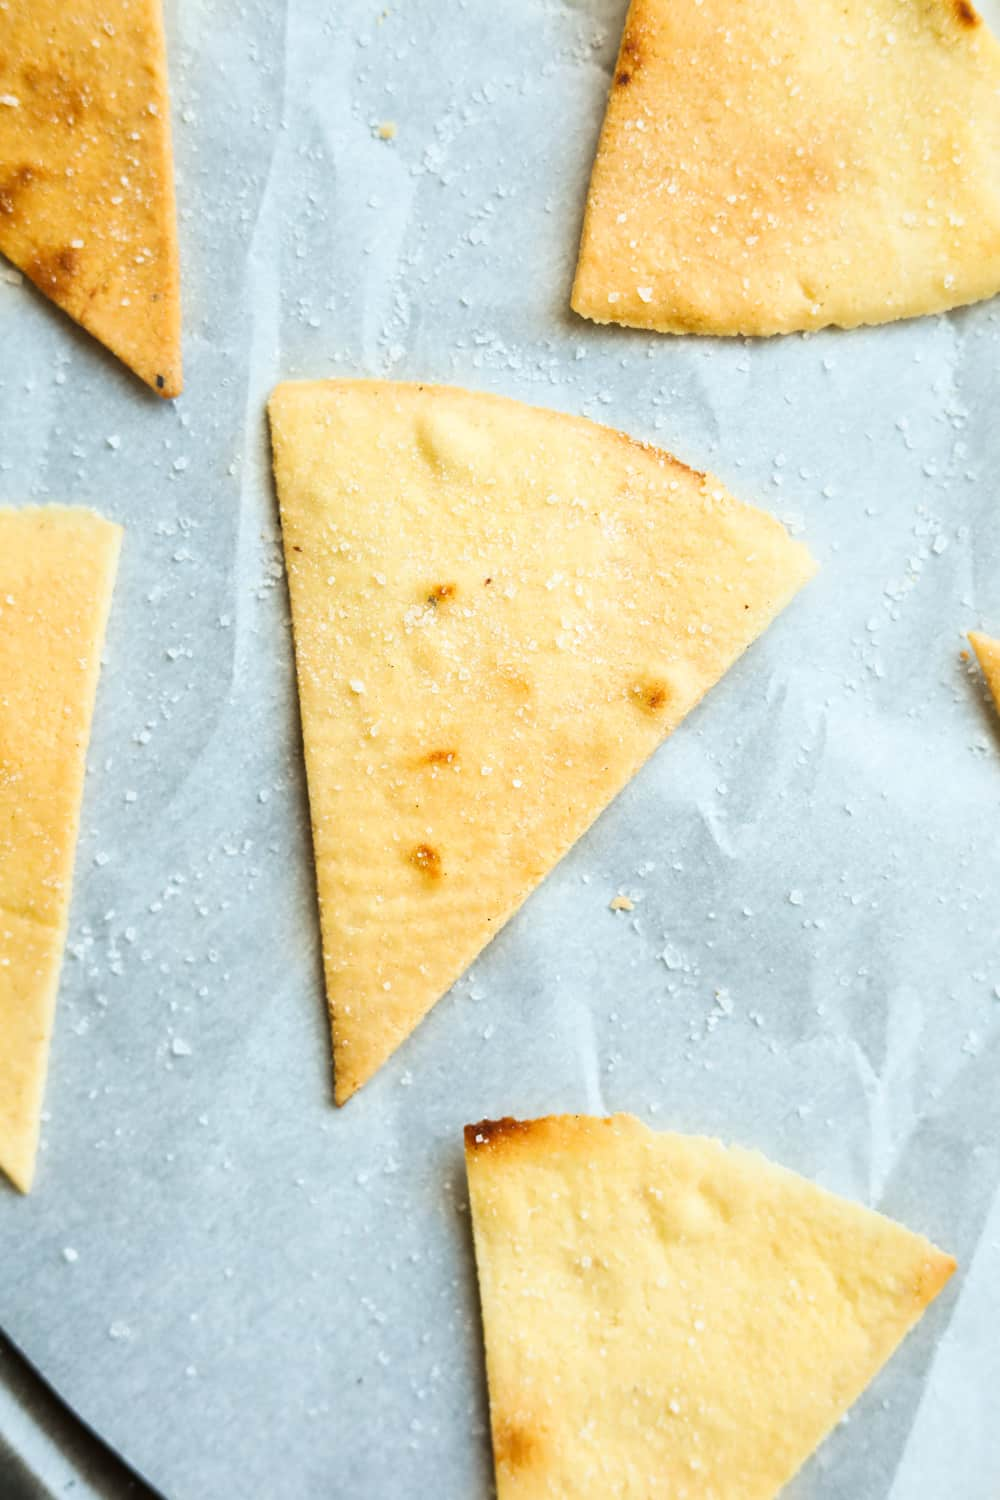 Tortilla chips on a baking sheet lined with parchment paper.